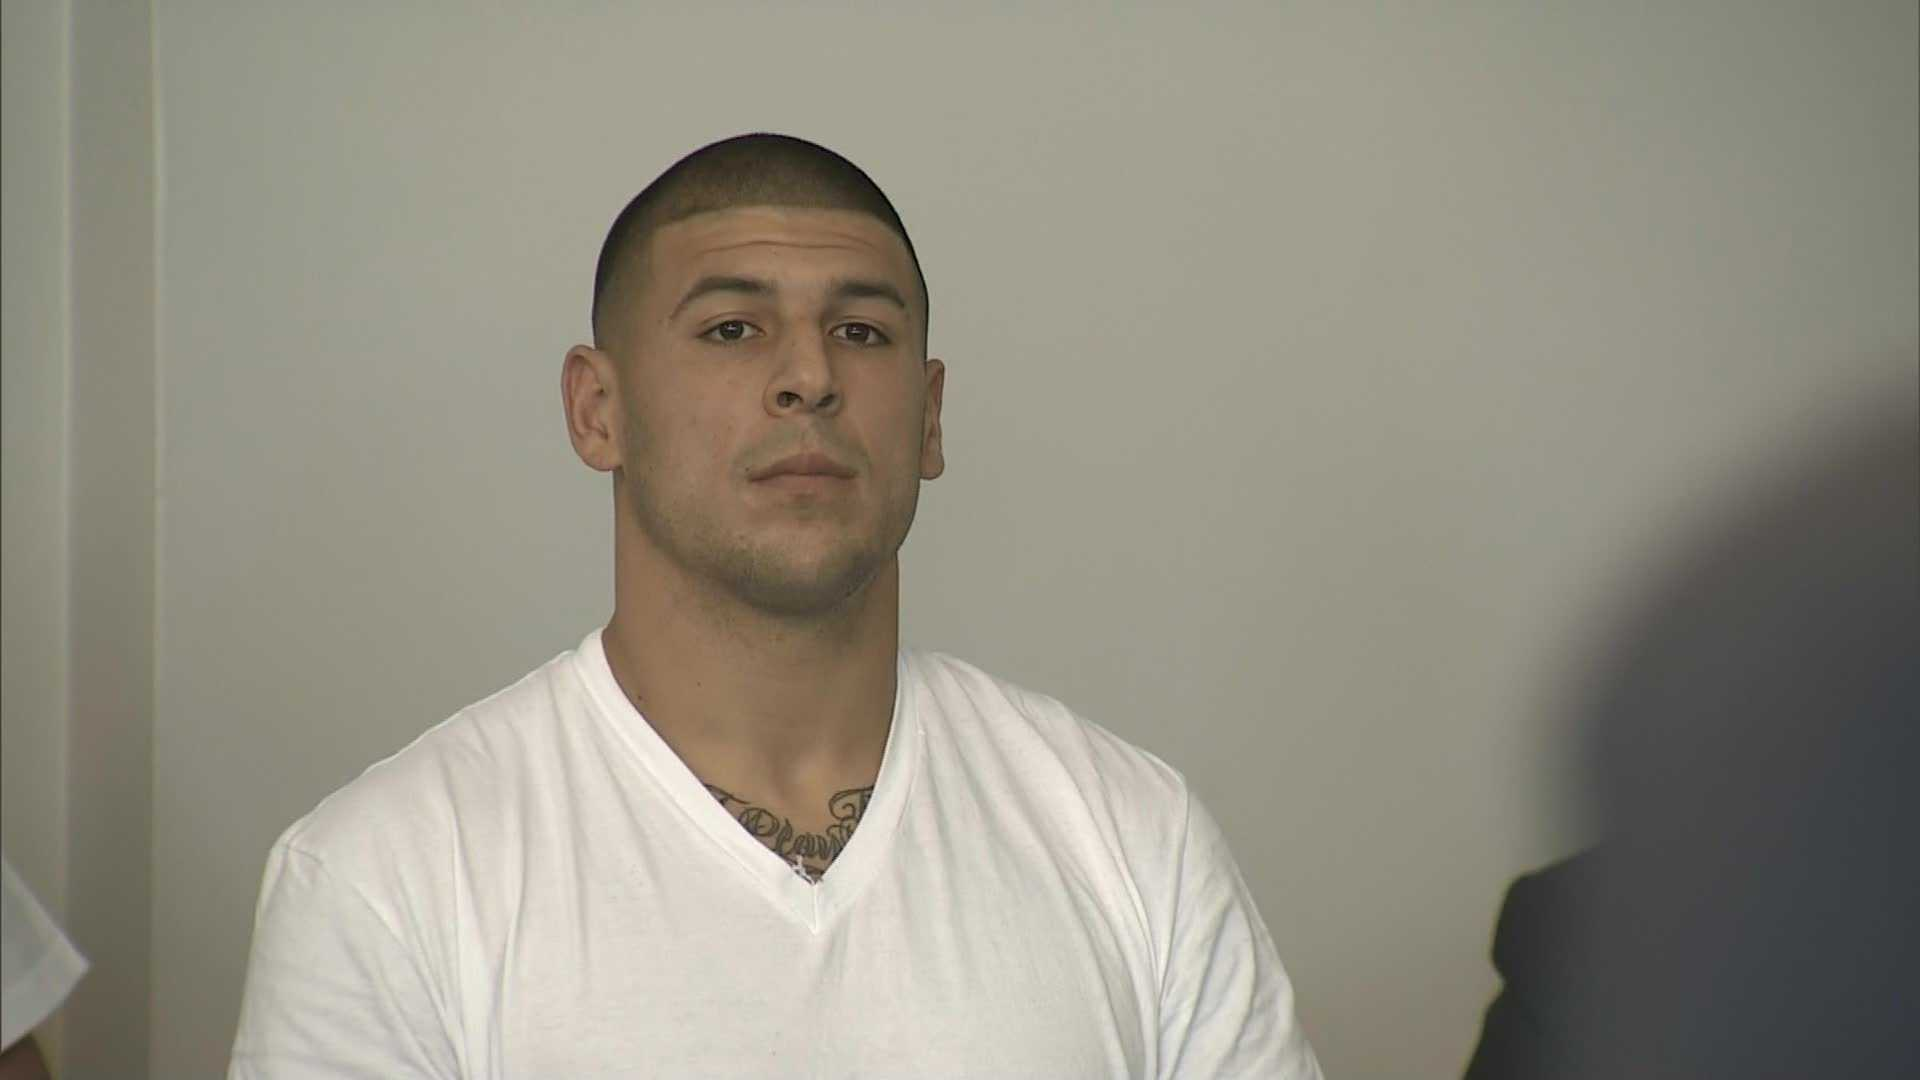 Former Patriots tight end Aaron Hernandez was arrested and charged with first-degree murder on June 26, 2013, in connection with the death of Odin Lloyd.